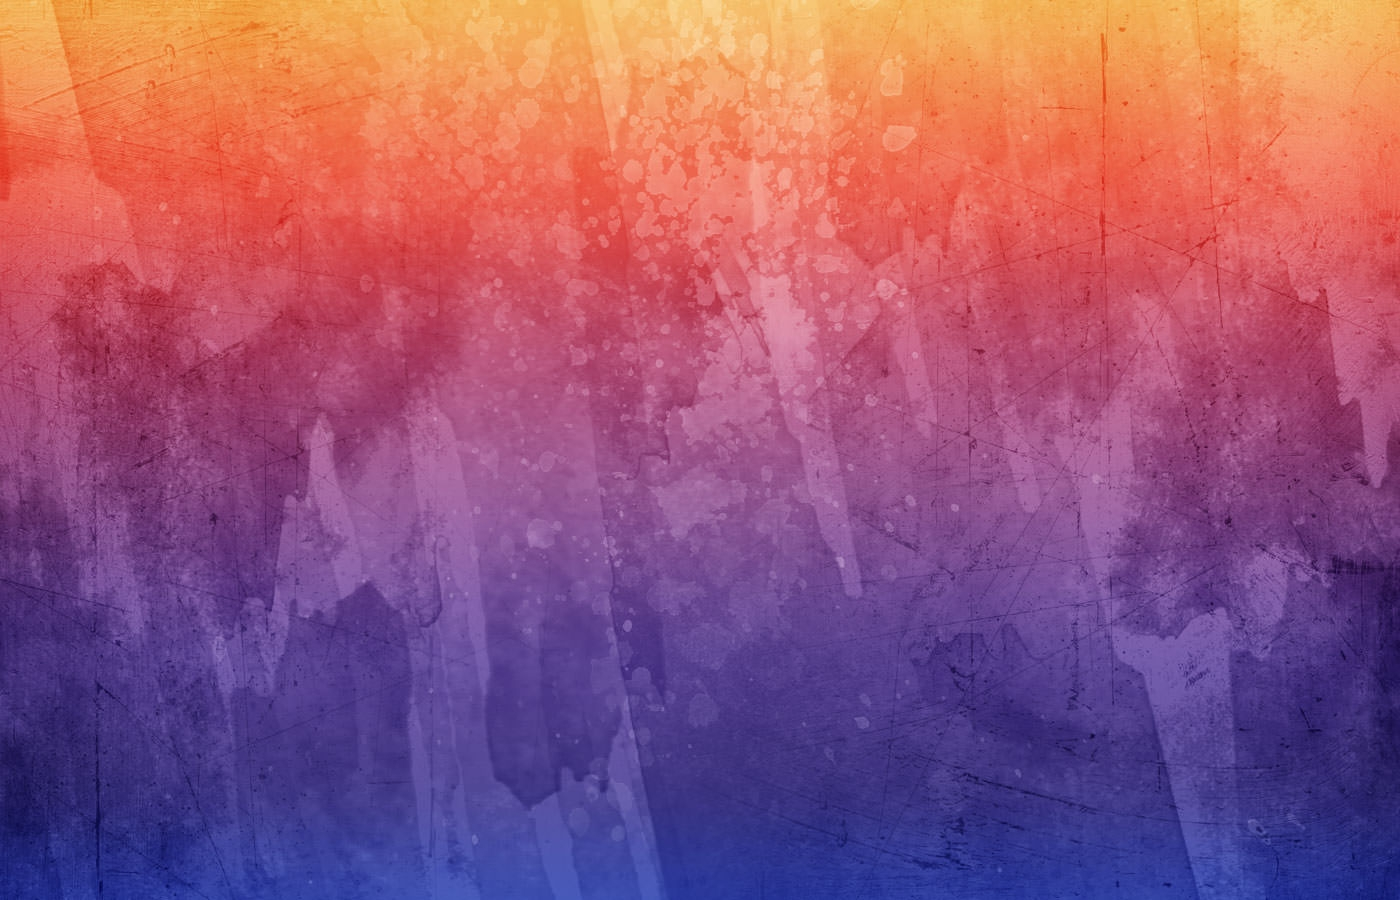 Free Grunge Watercolor Stock Background Images